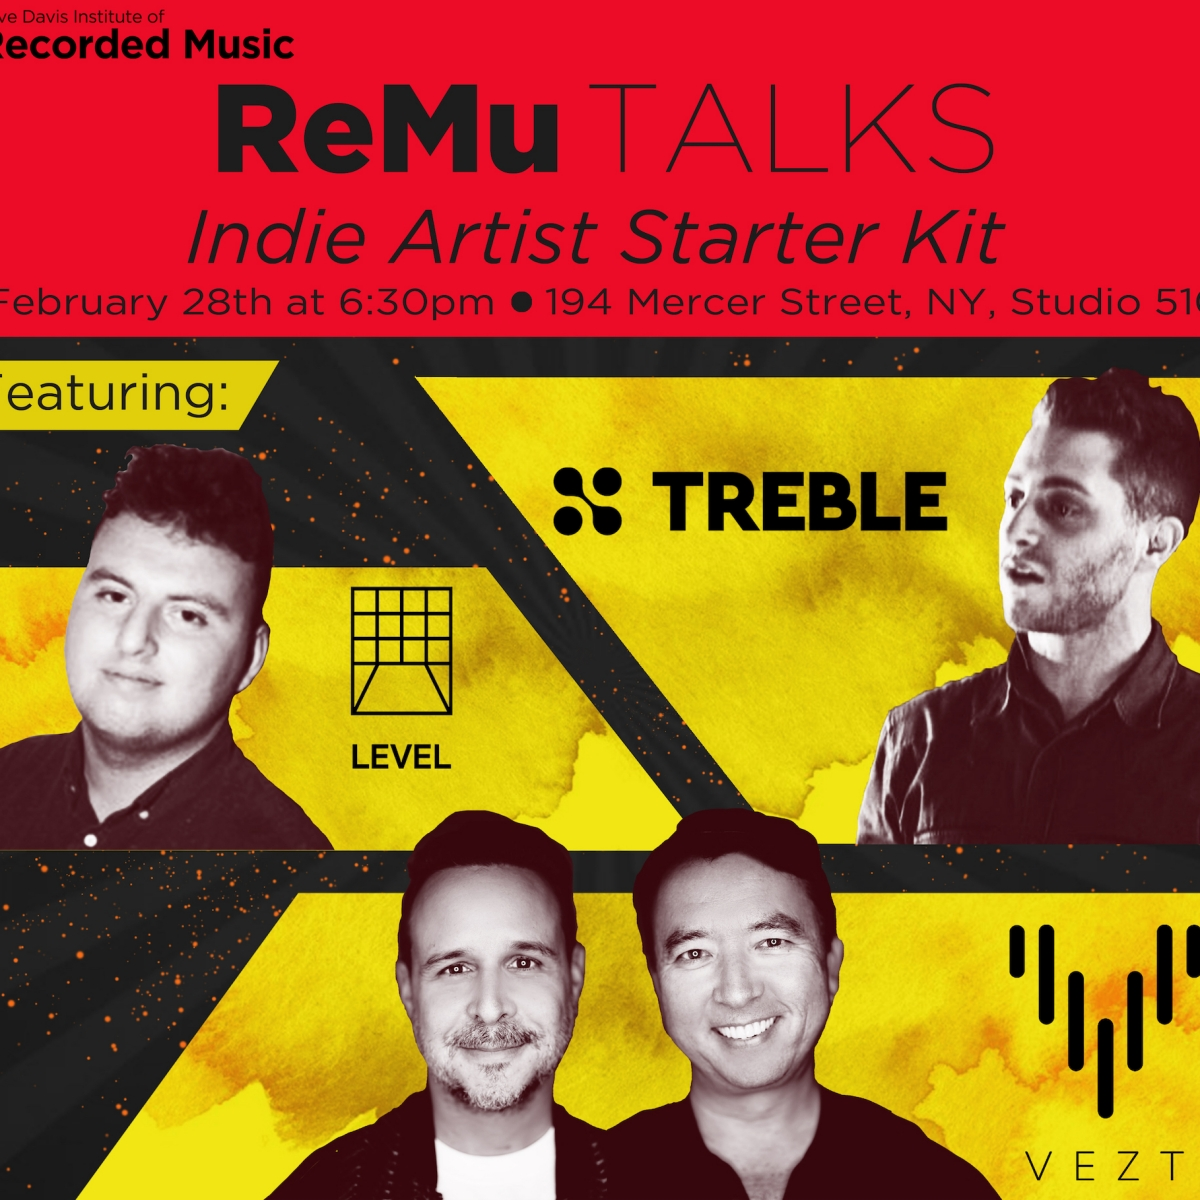 flyer for ReMu Talks: Indie Artist Starter Kit featuring the companies Vezt, Teble, and Level